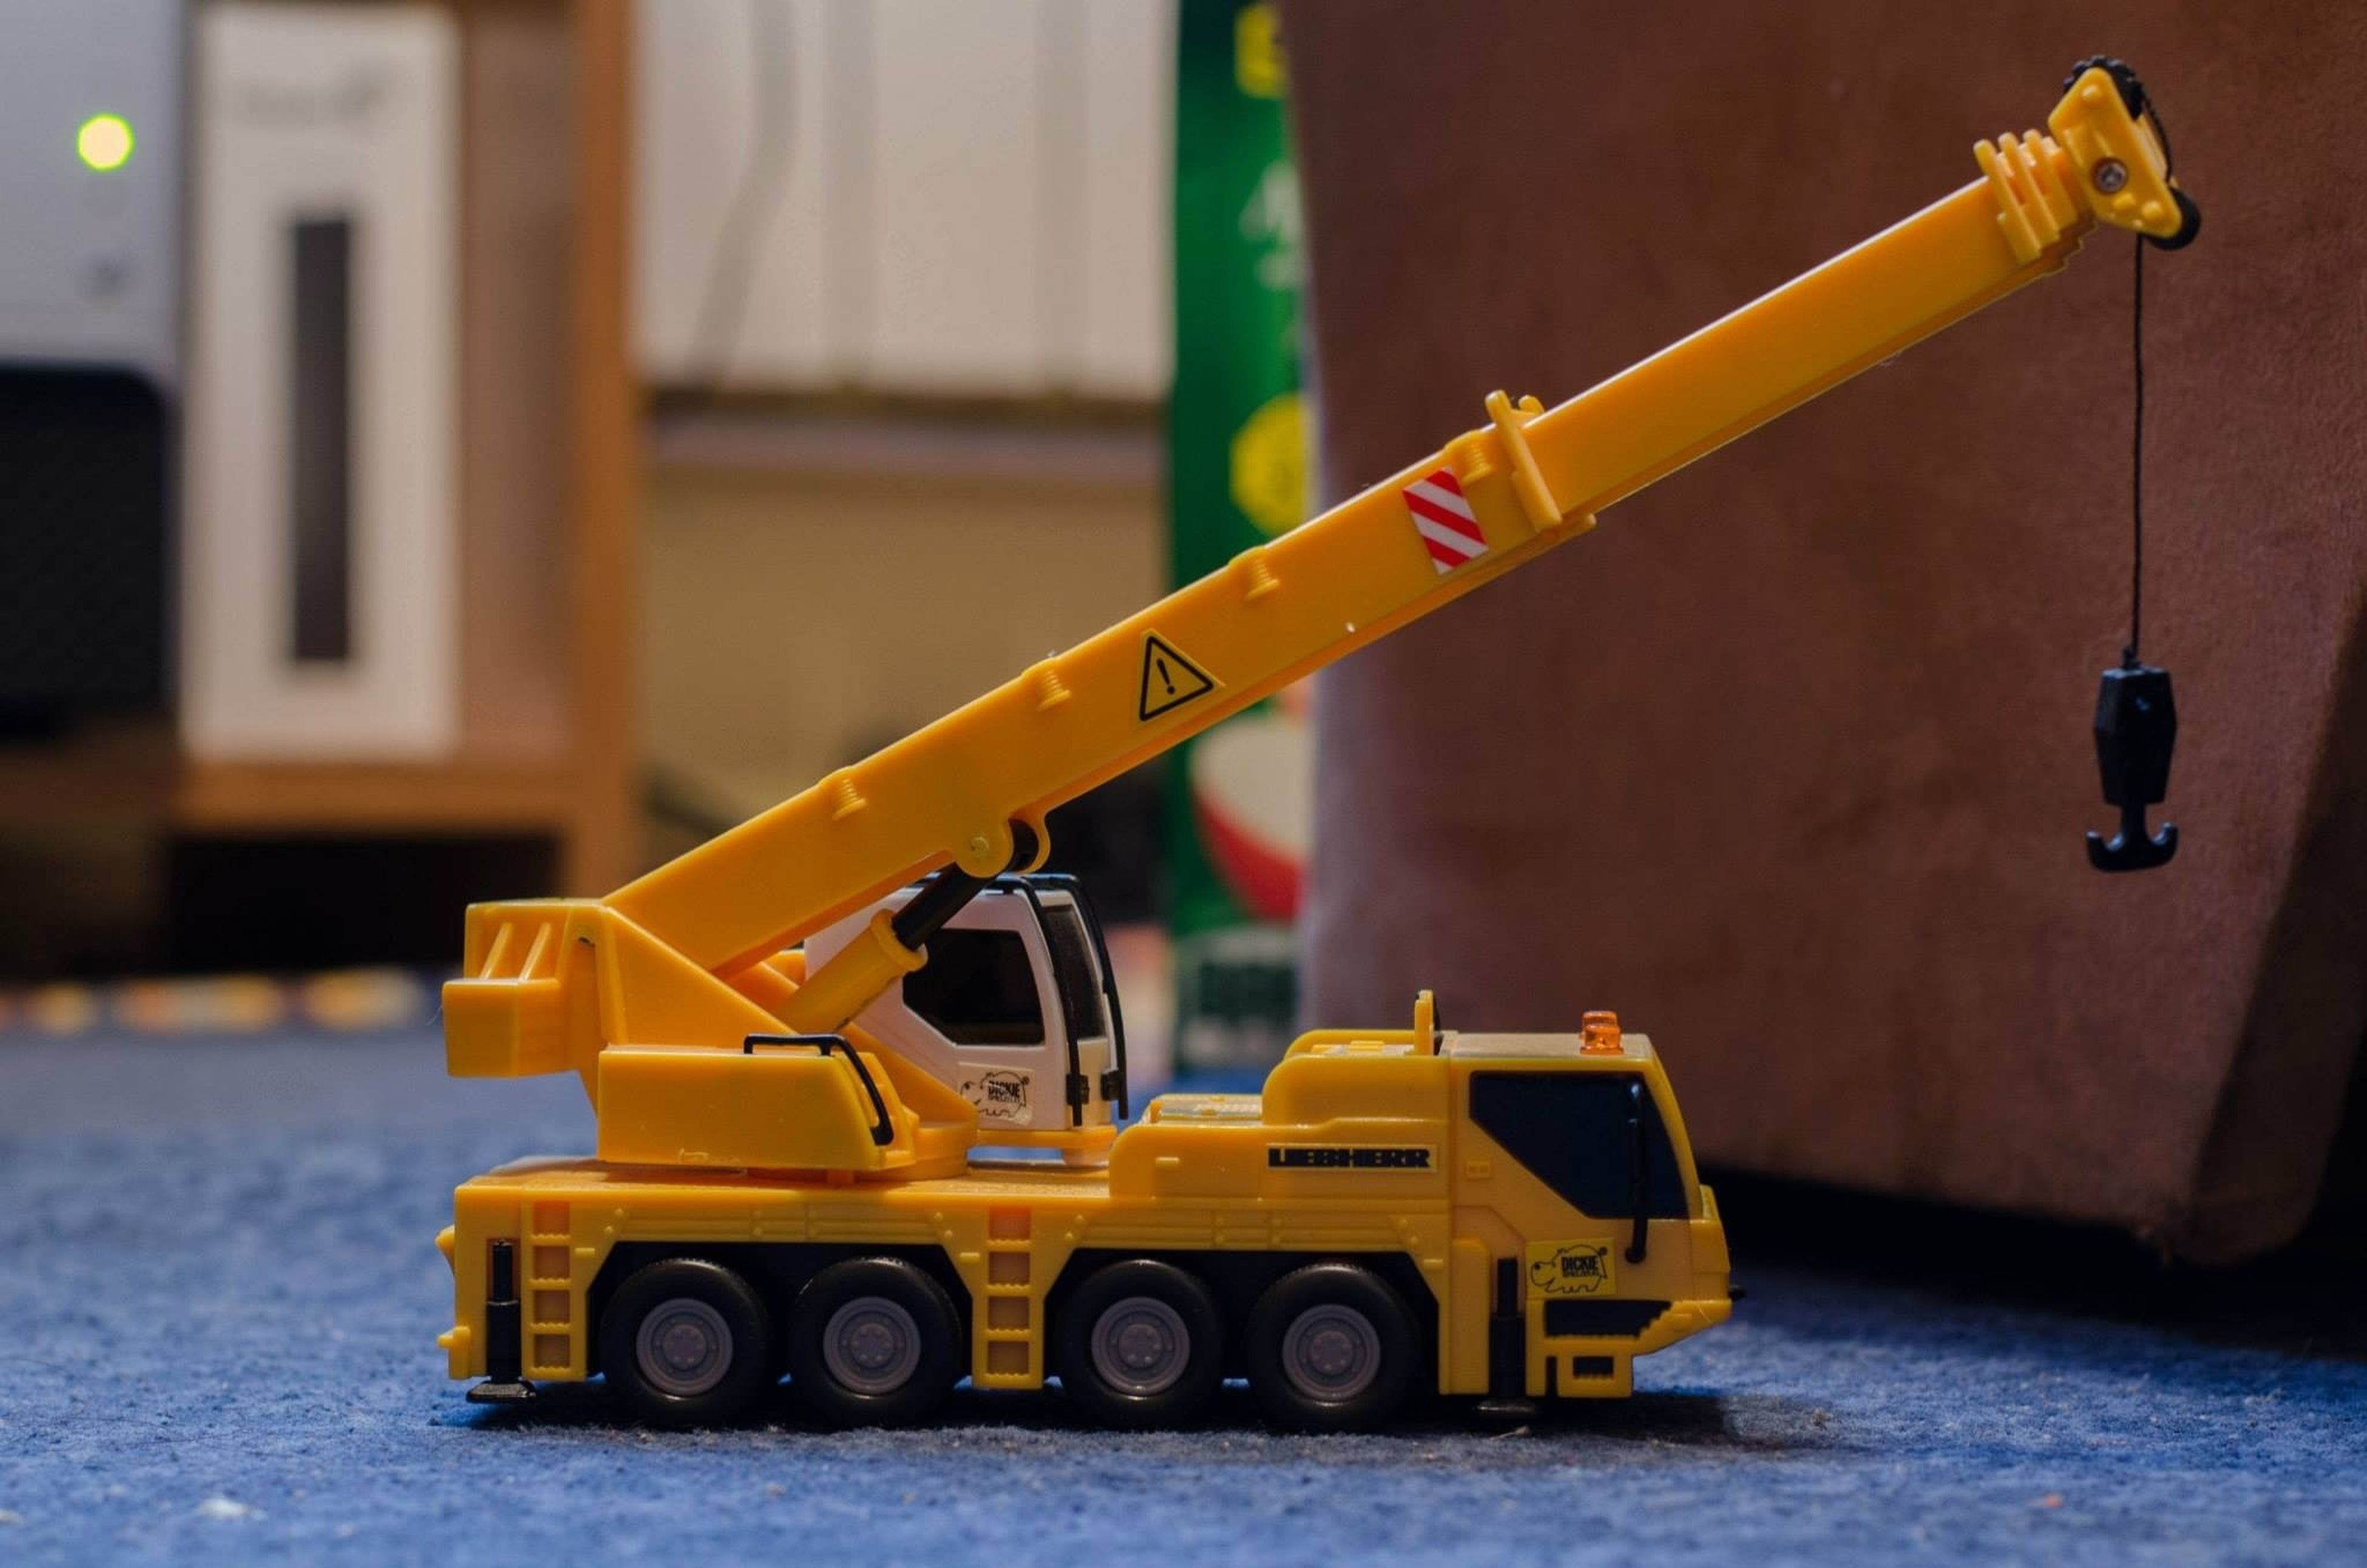 yellow, transportation, mode of transport, land vehicle, street, focus on foreground, built structure, close-up, outdoors, safety, toy, building exterior, no people, day, protection, car, architecture, metal, stationary, childhood